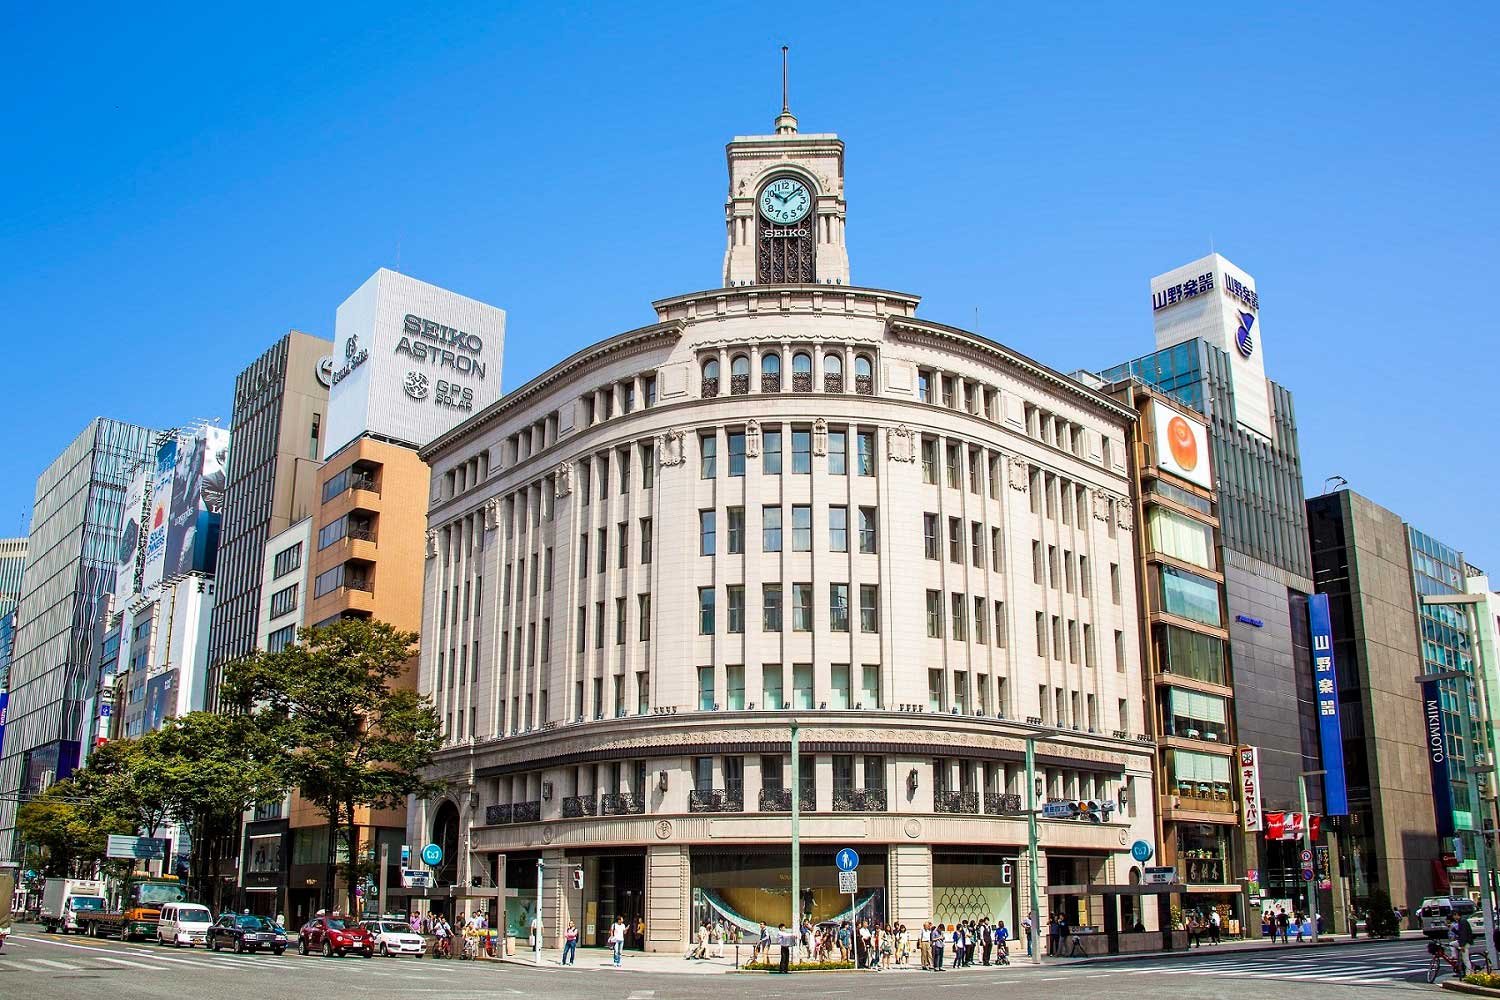 The Wako building in Tokyo, featuring Seiko's Astron Clock Tower. - www.revolution.watch